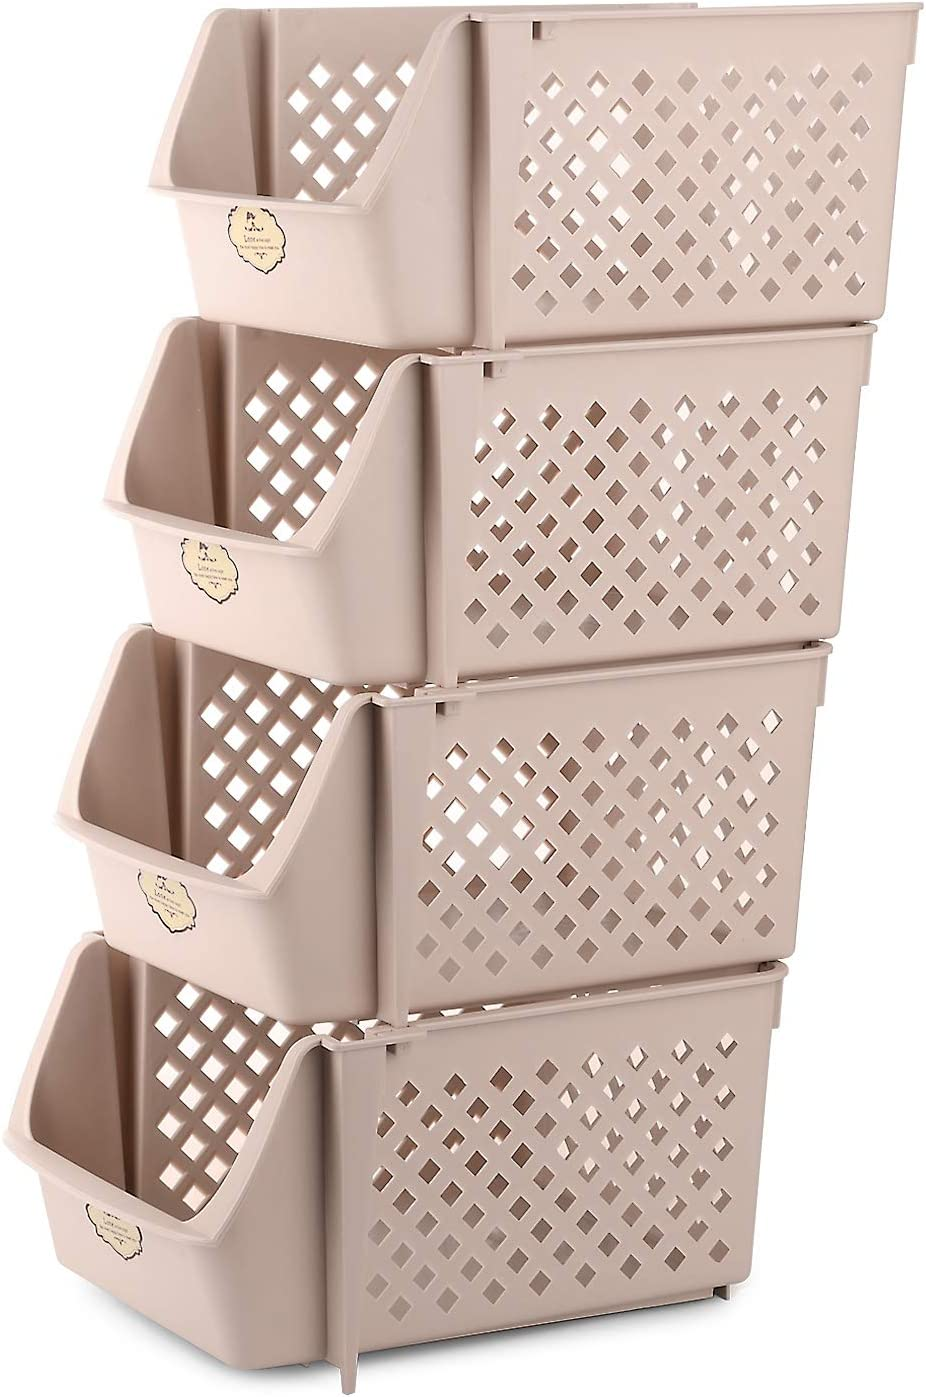 Titan Mall Stackable Storage Baskets for Food, Snacks, Bottles, Toys, Toiletries, Plastic Storage Baskets Set of 4, 15x10x7 Inch/bin, All Beige Color, Stackable Storage Bins for Space Saving